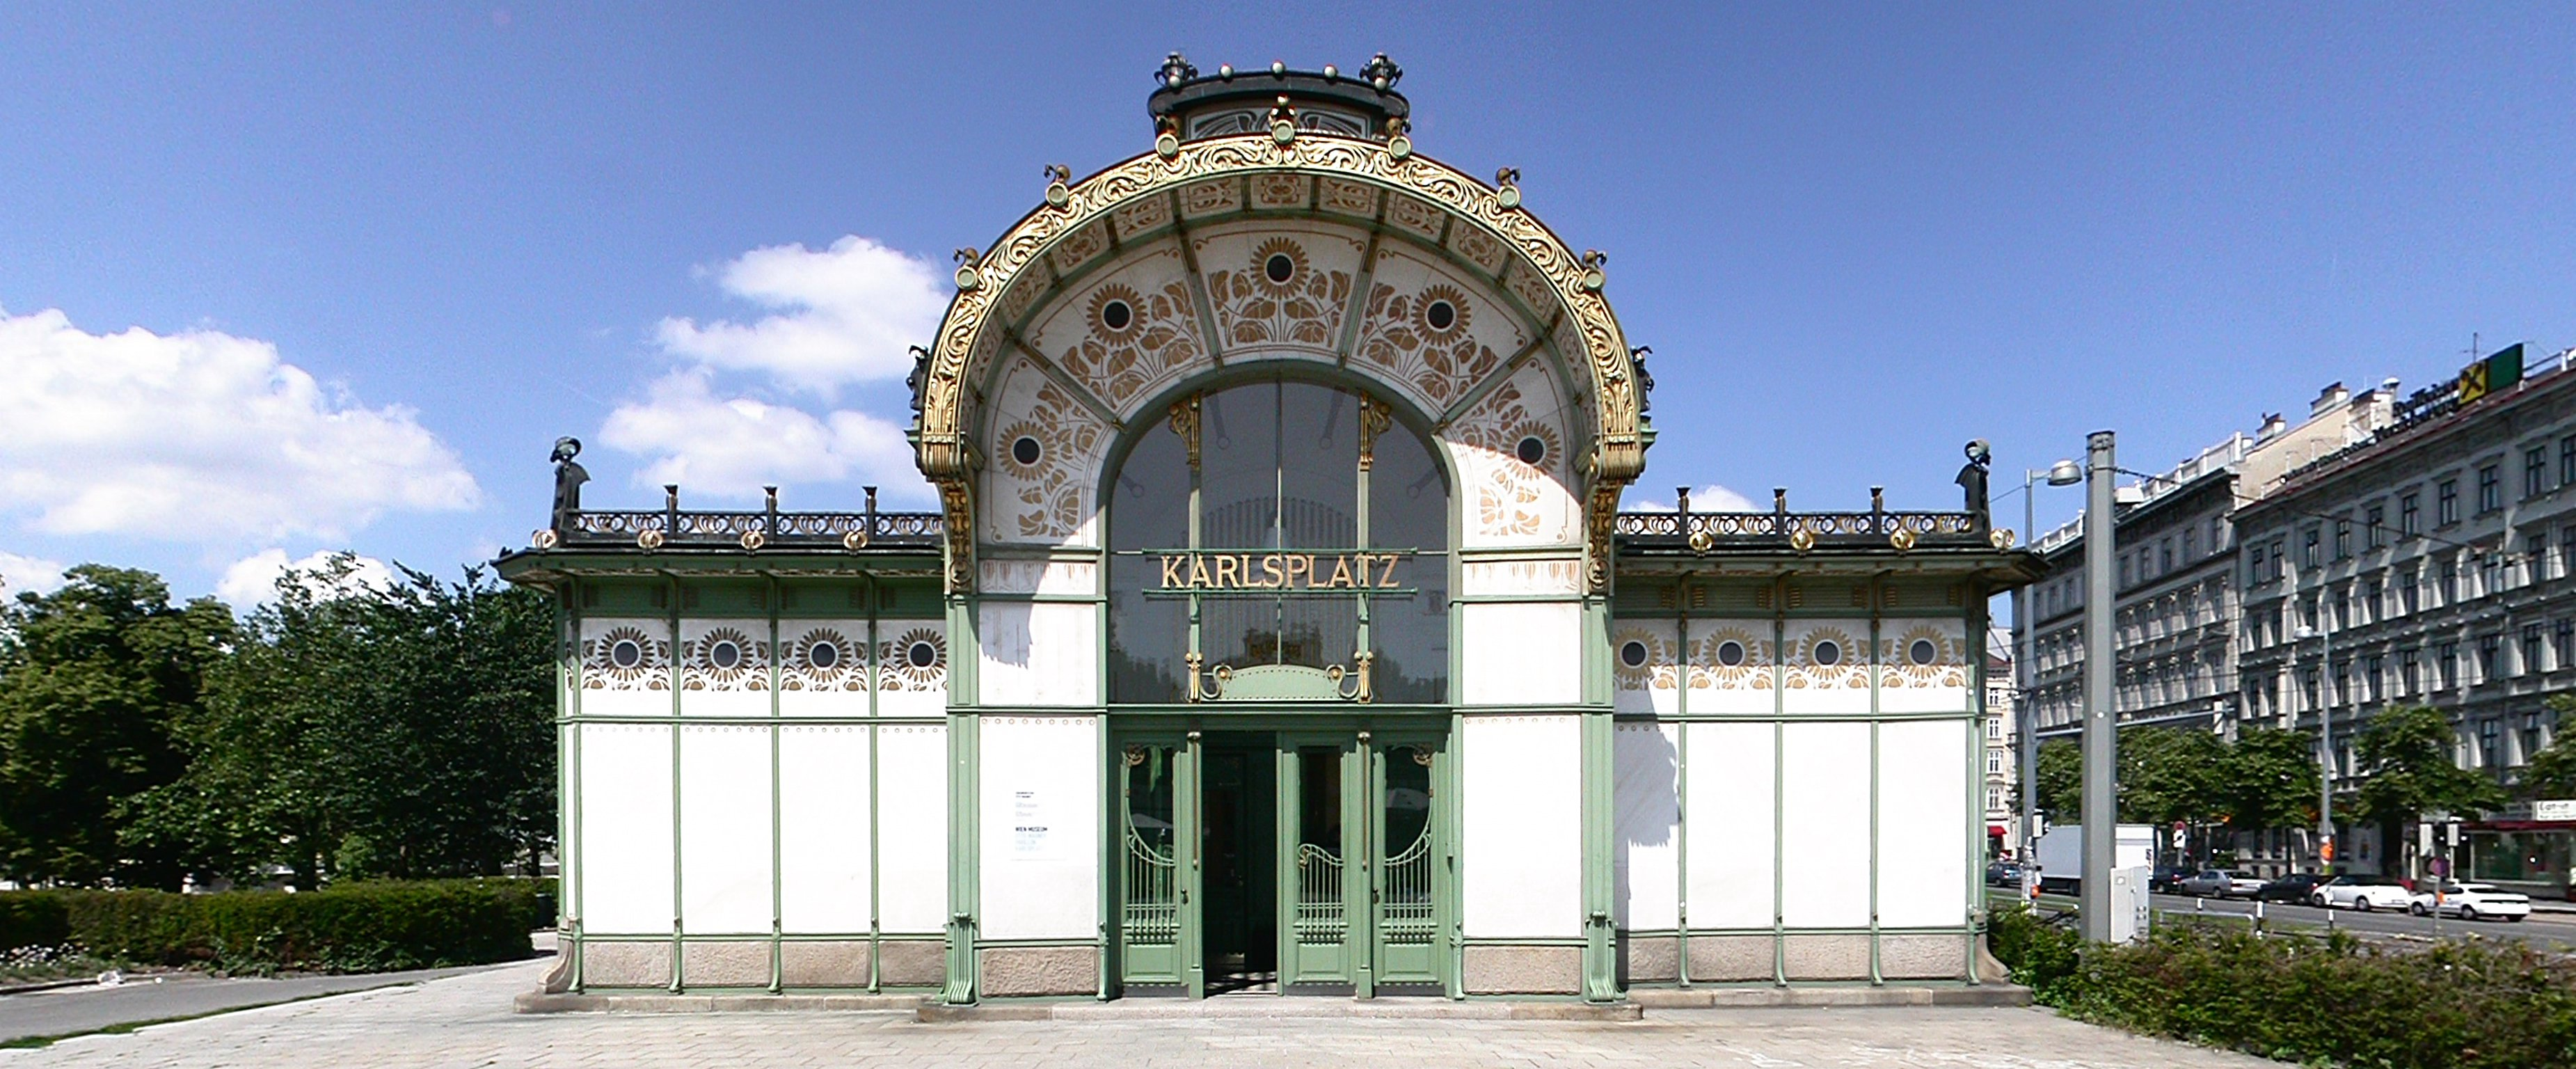 File:Otto-Wagner-Pavillon 110606.jpg - Wikipedia, the free ...